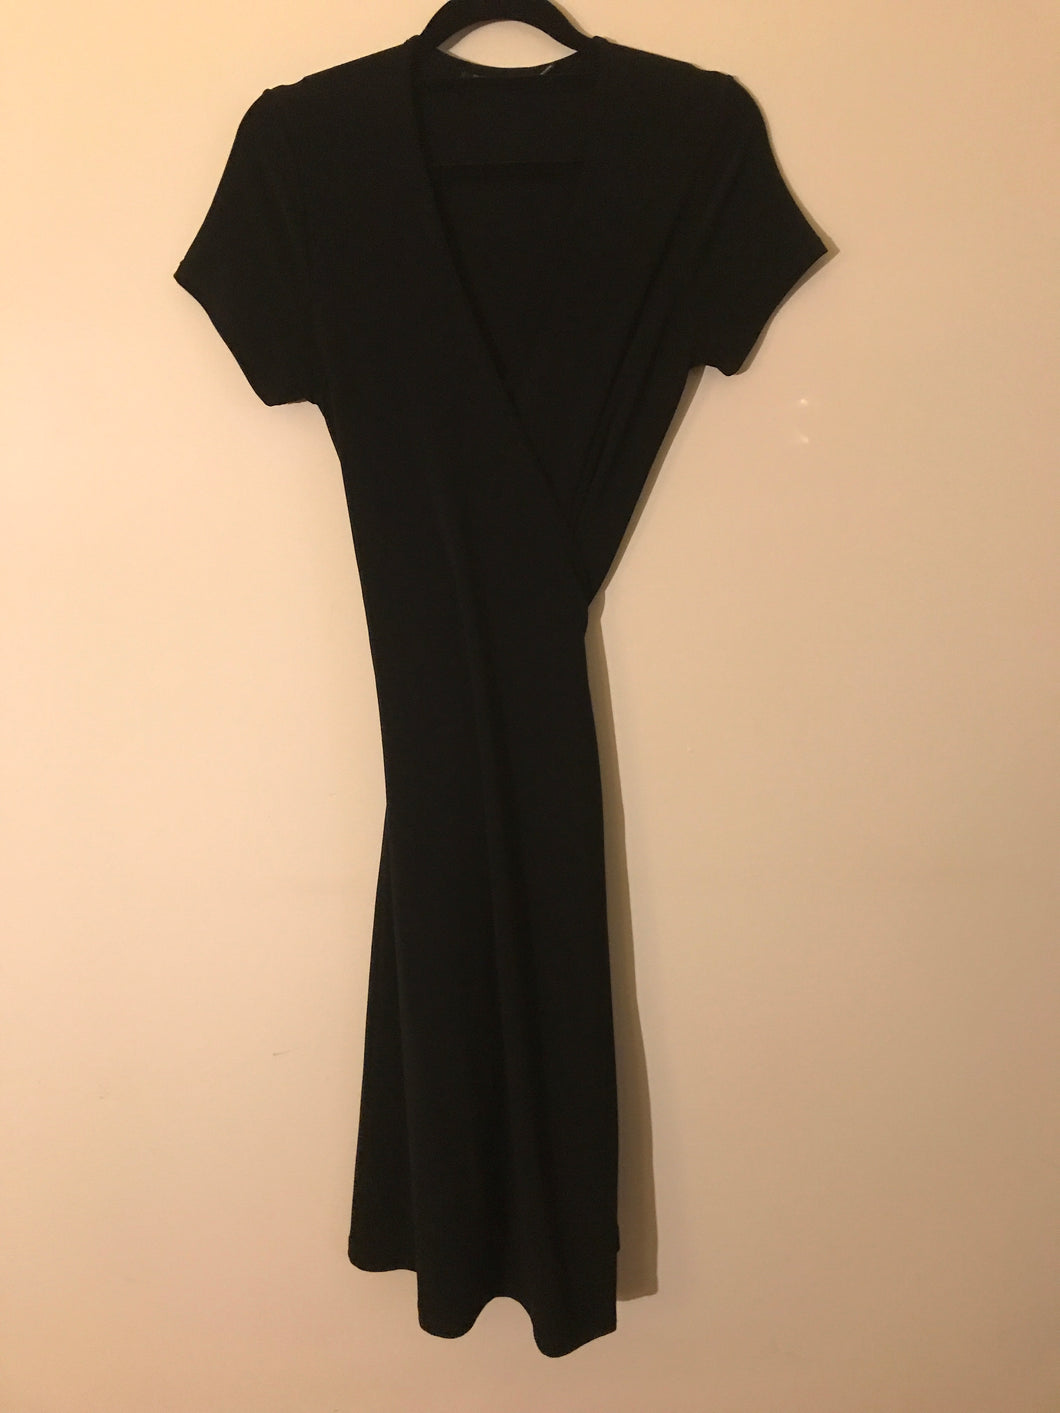 Events Essentials black Wrap around Size 8